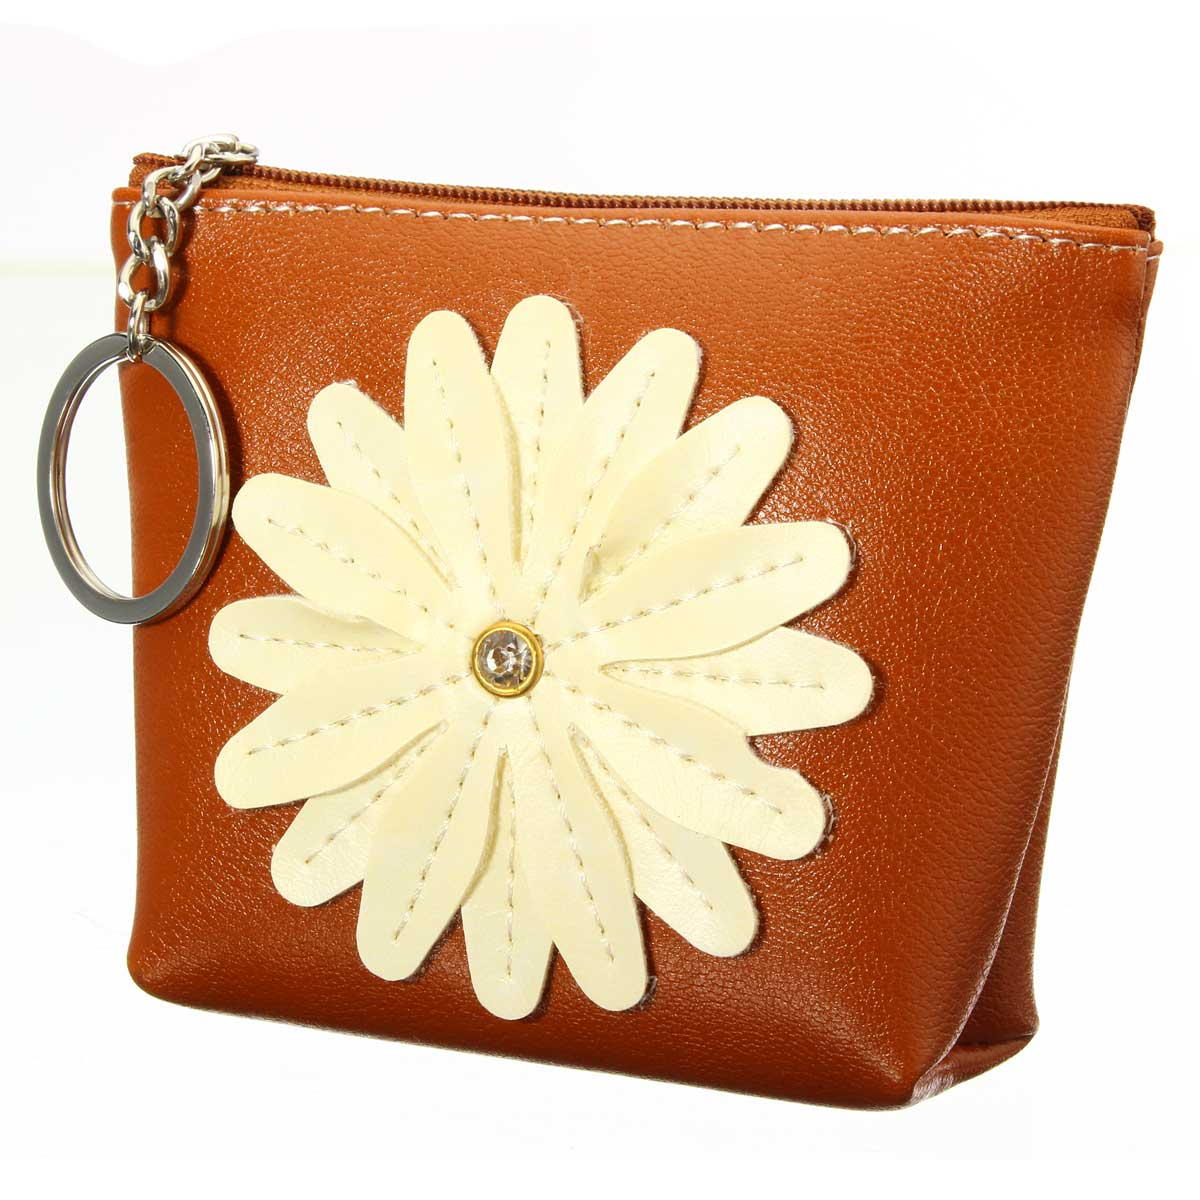 Aequeen Flower Coin Purse Change Wallet Girl Mini Wallets Key Storage Bag Children Gift Leather Money Purses Ladies Zipper Pouch